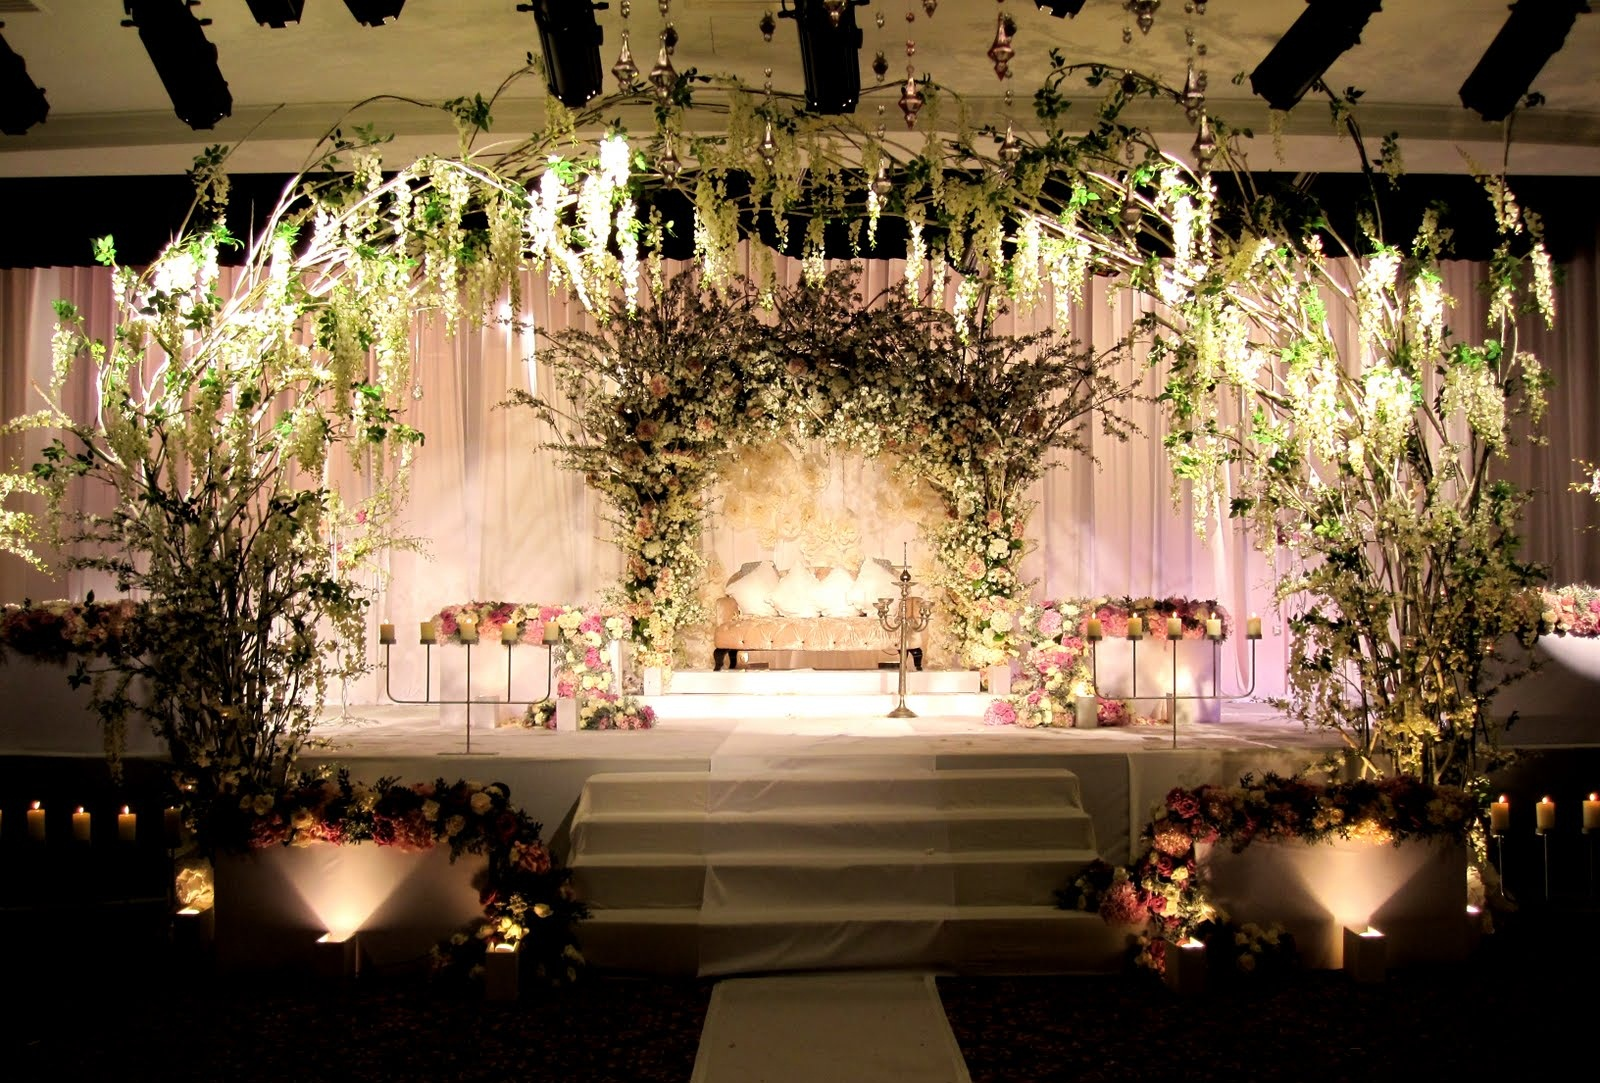 Fleurs et couleurs weddings events decoration for Wedding interior decoration images